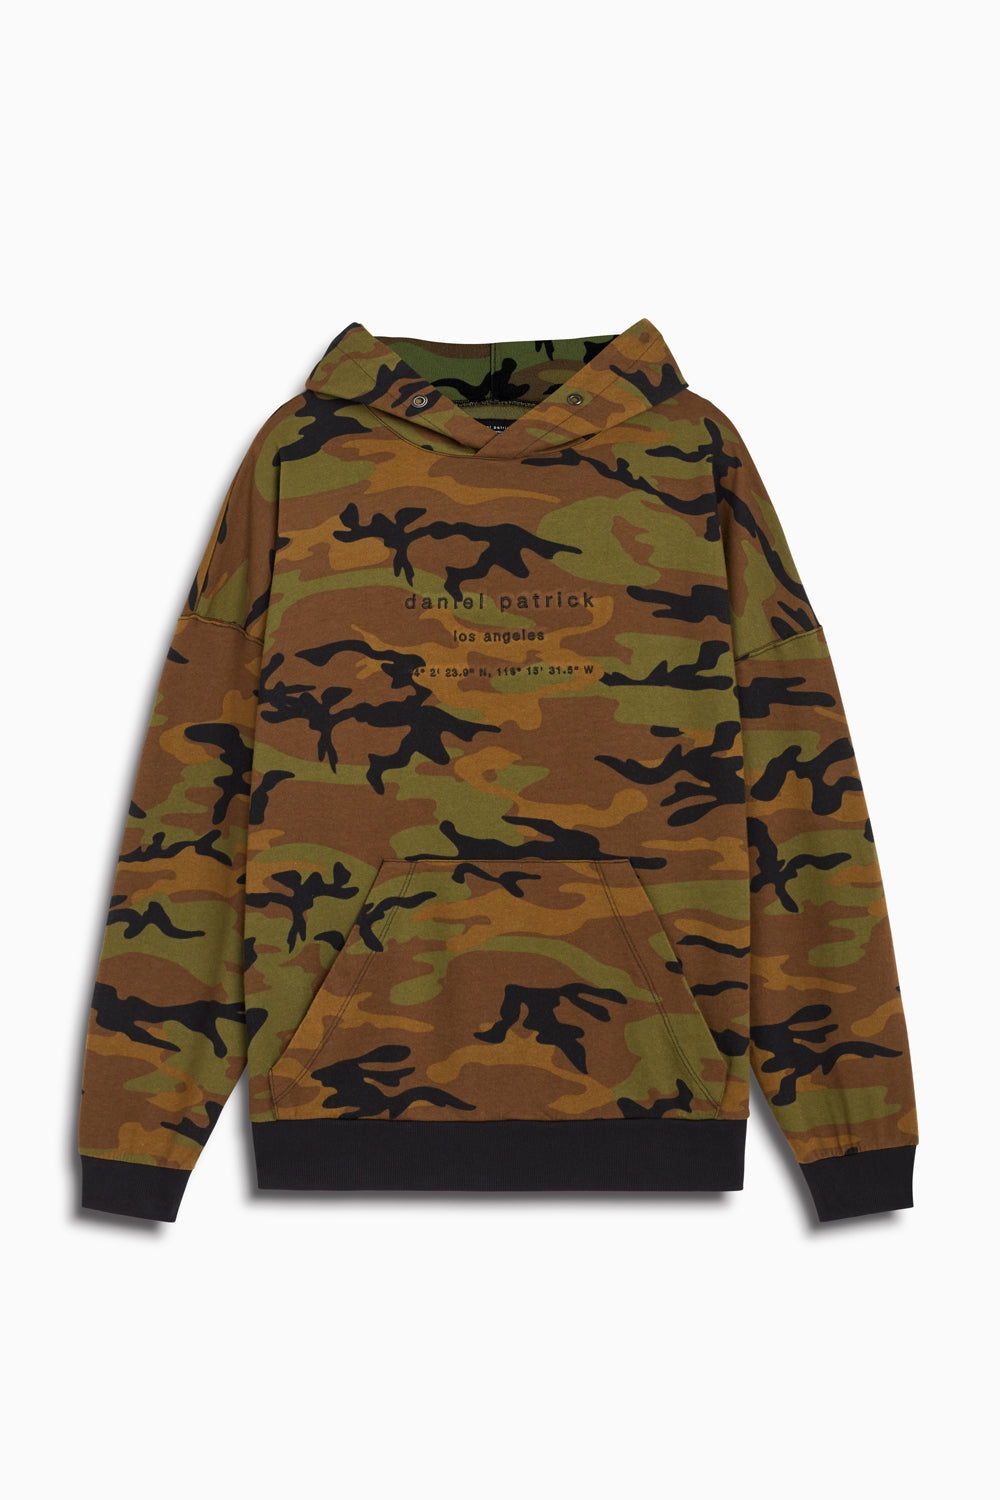 LA hoodie in camo/black by daniel patrick